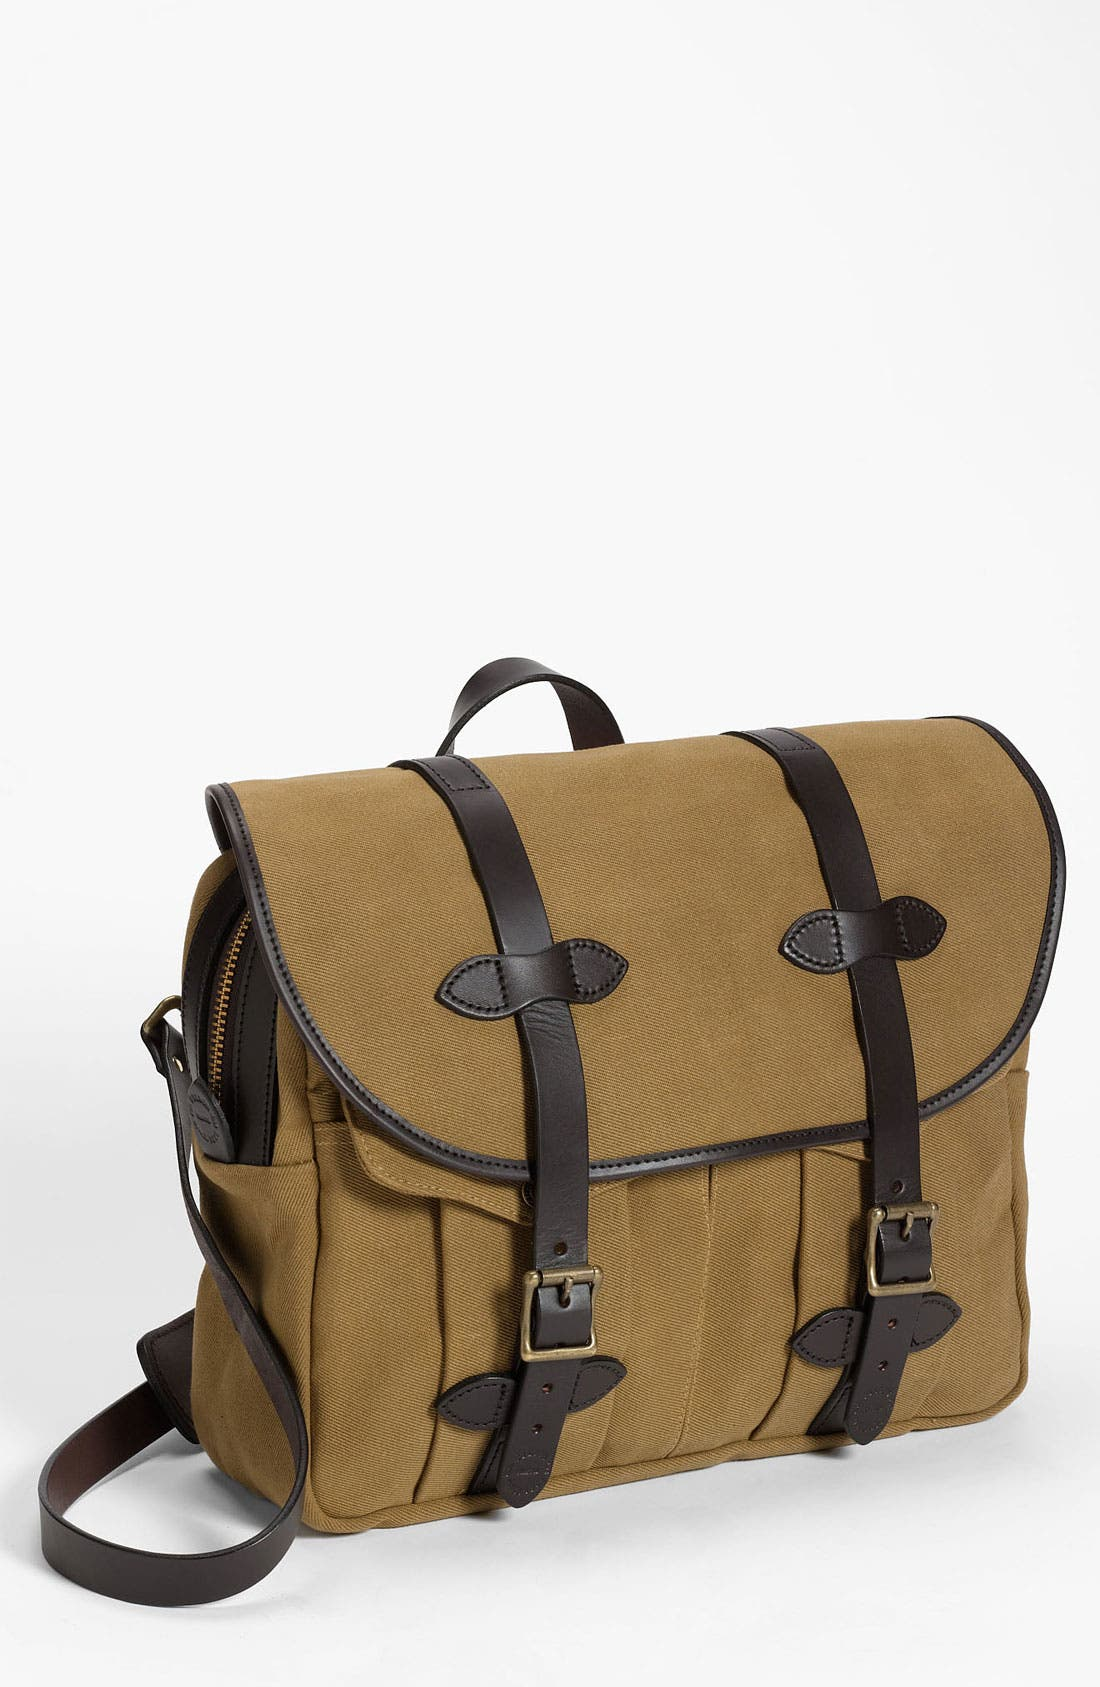 Alternate Image 1 Selected - Filson Small Carry-On Bag (16 Inch)